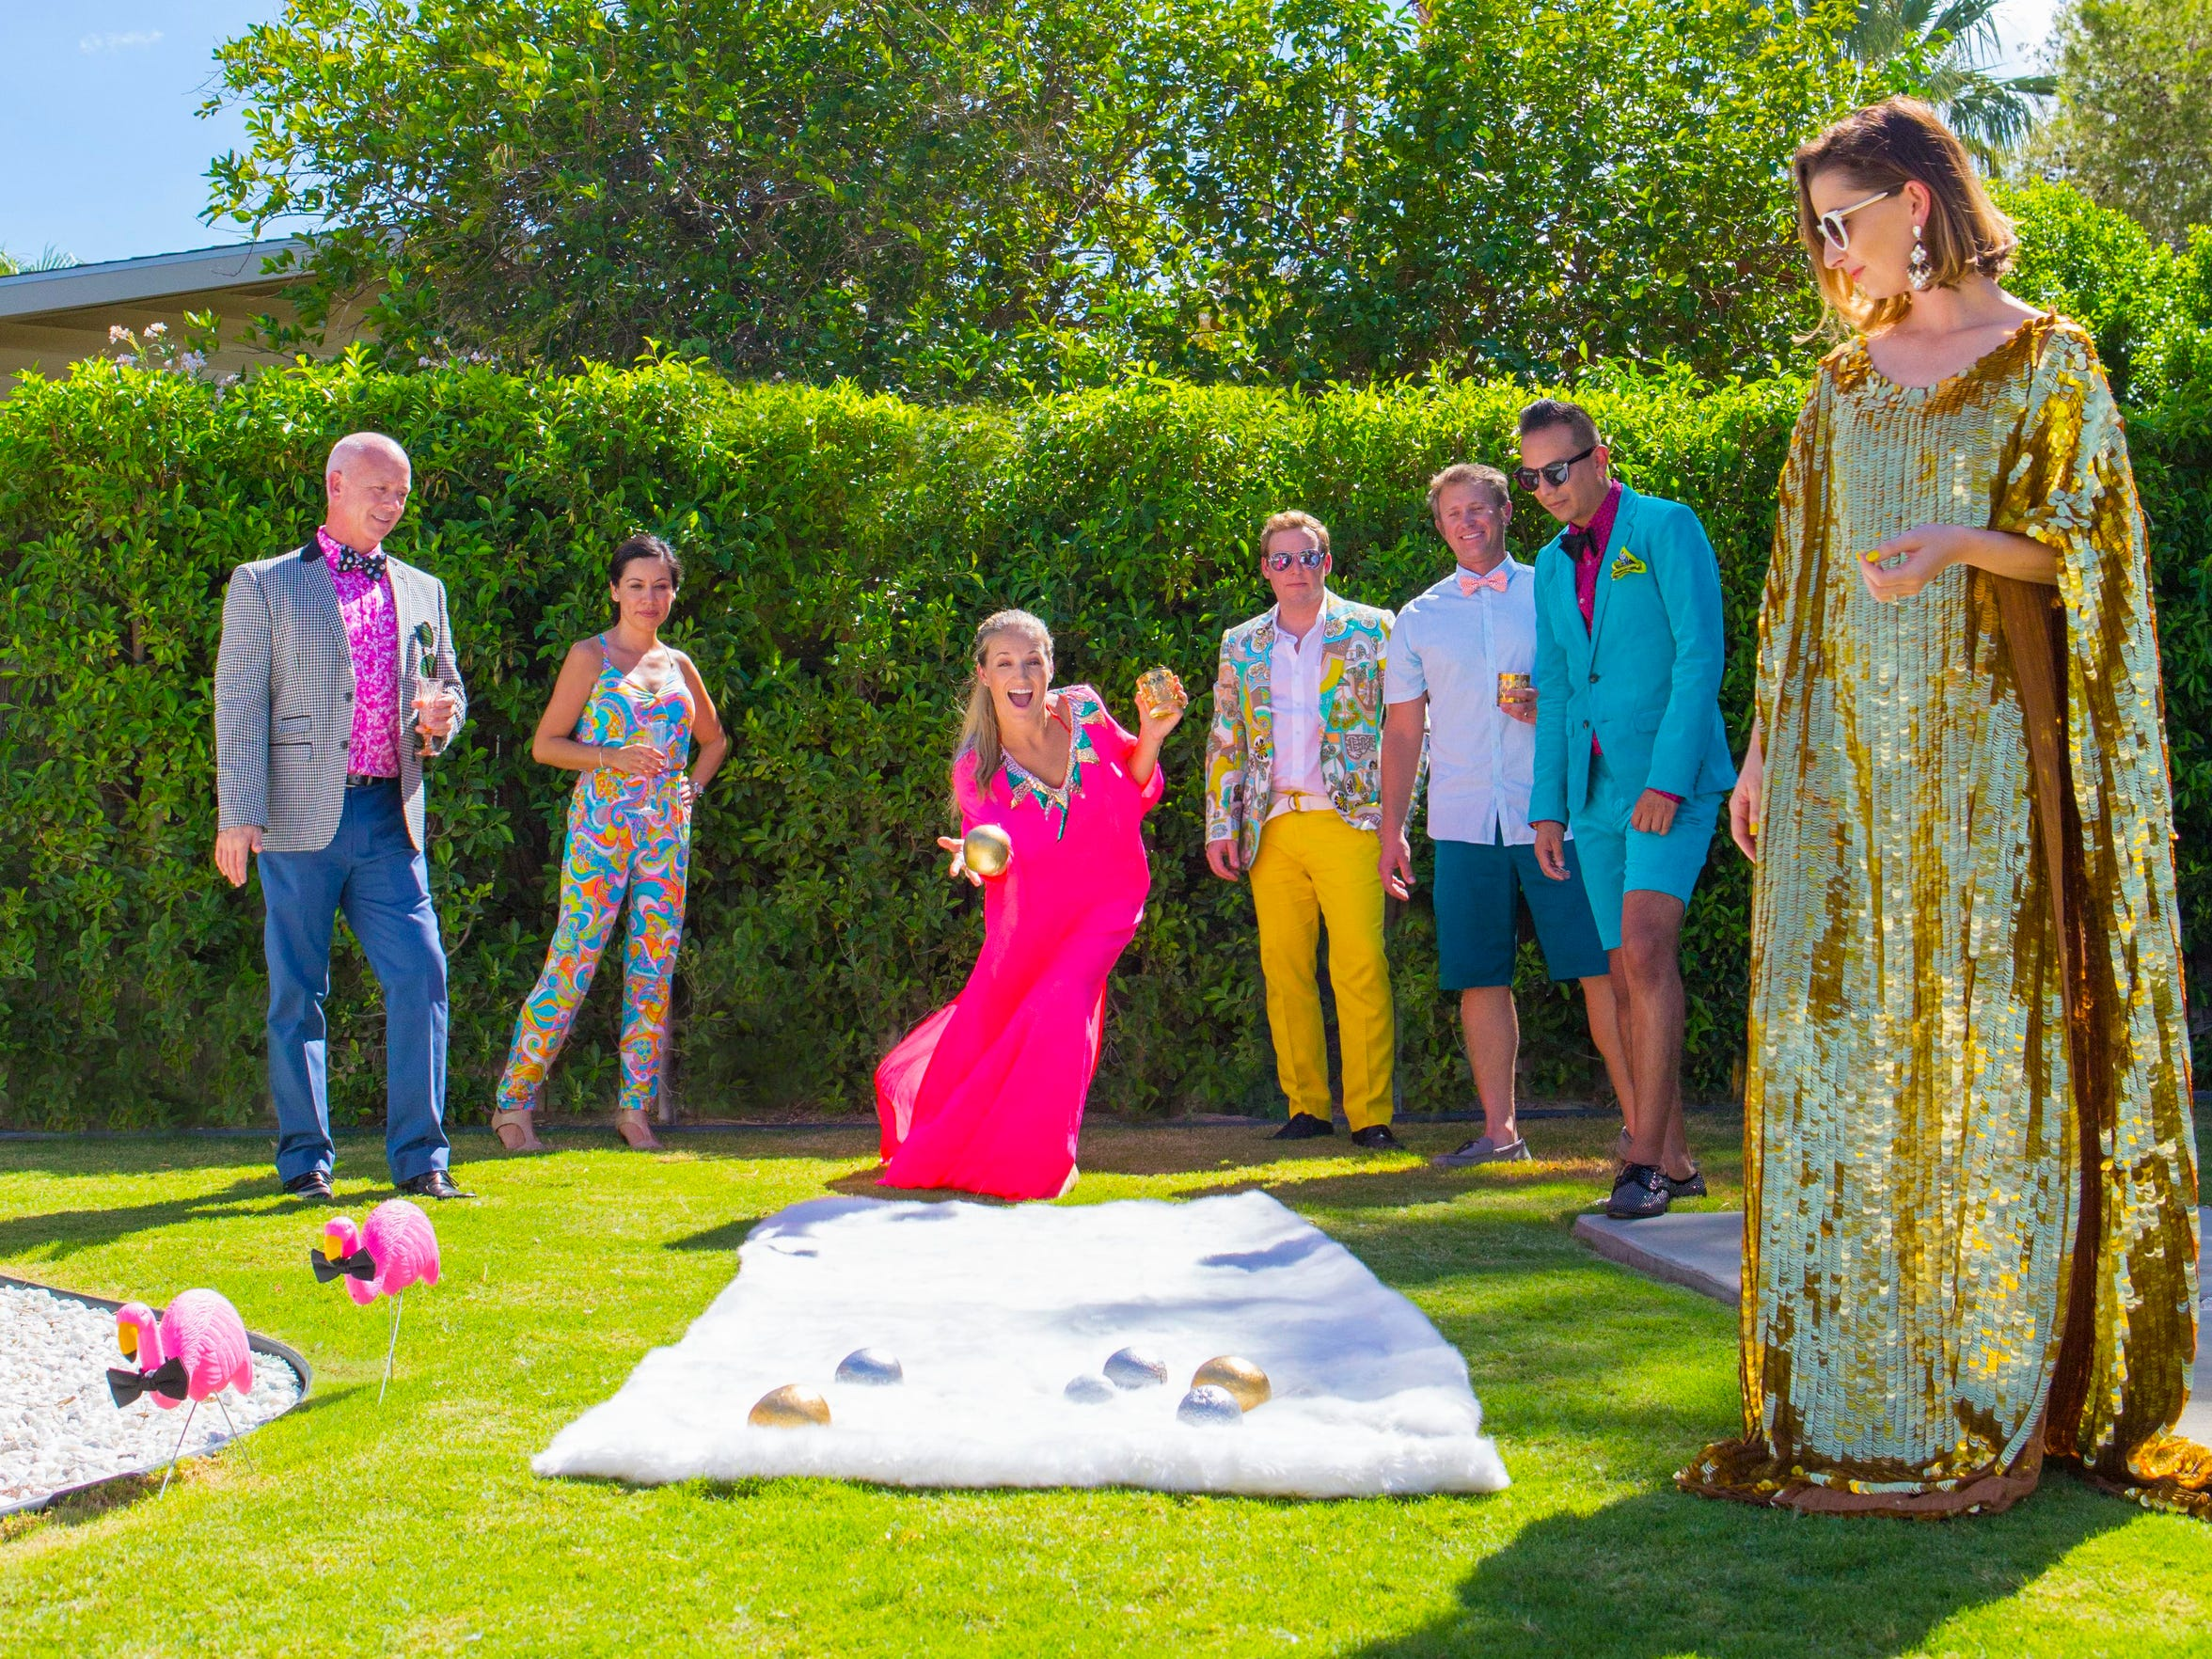 Have a ball and surprise guests with DIY bocce ball, created simply by spray-painting fruit such as grapefruits in silver and gold.